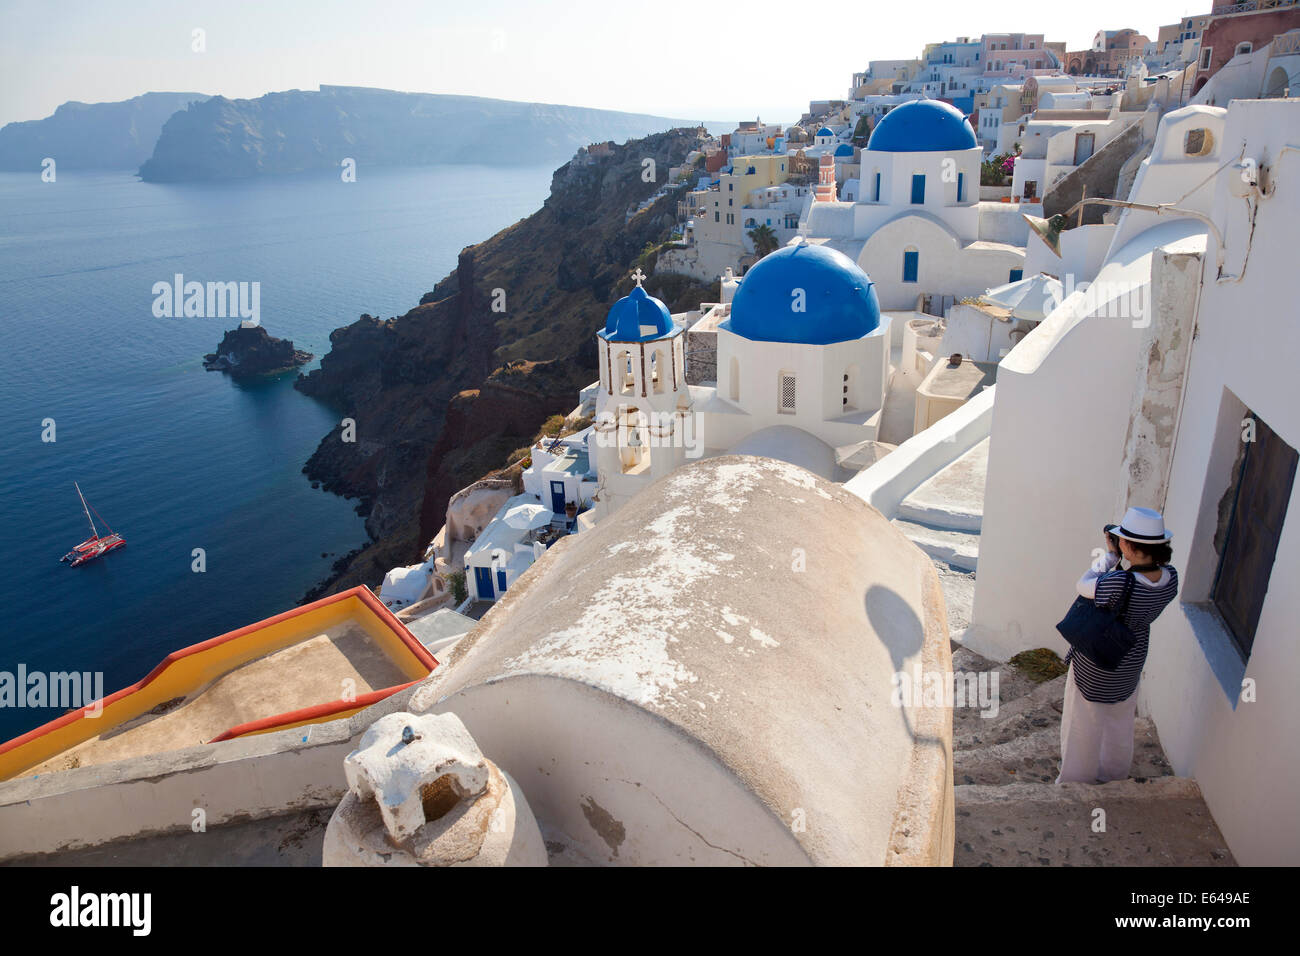 Le village de Oia Santorini Cyclades, Grèce Photo Stock